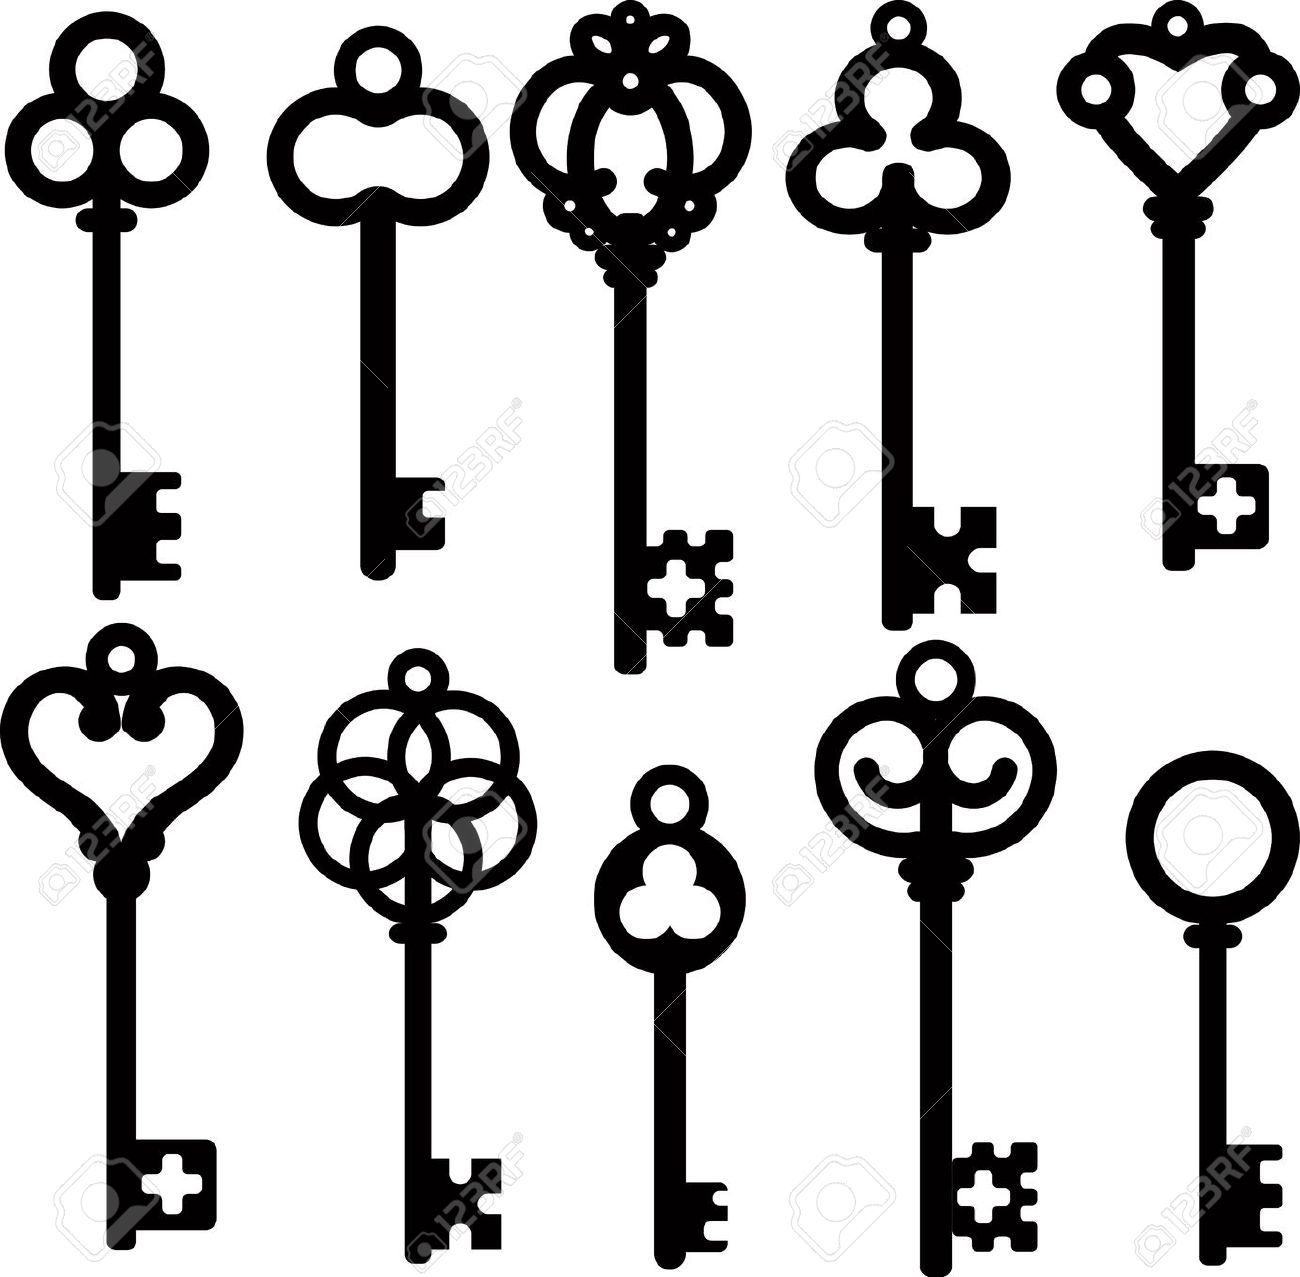 png black and white download Pin on let s. Vintage key clipart